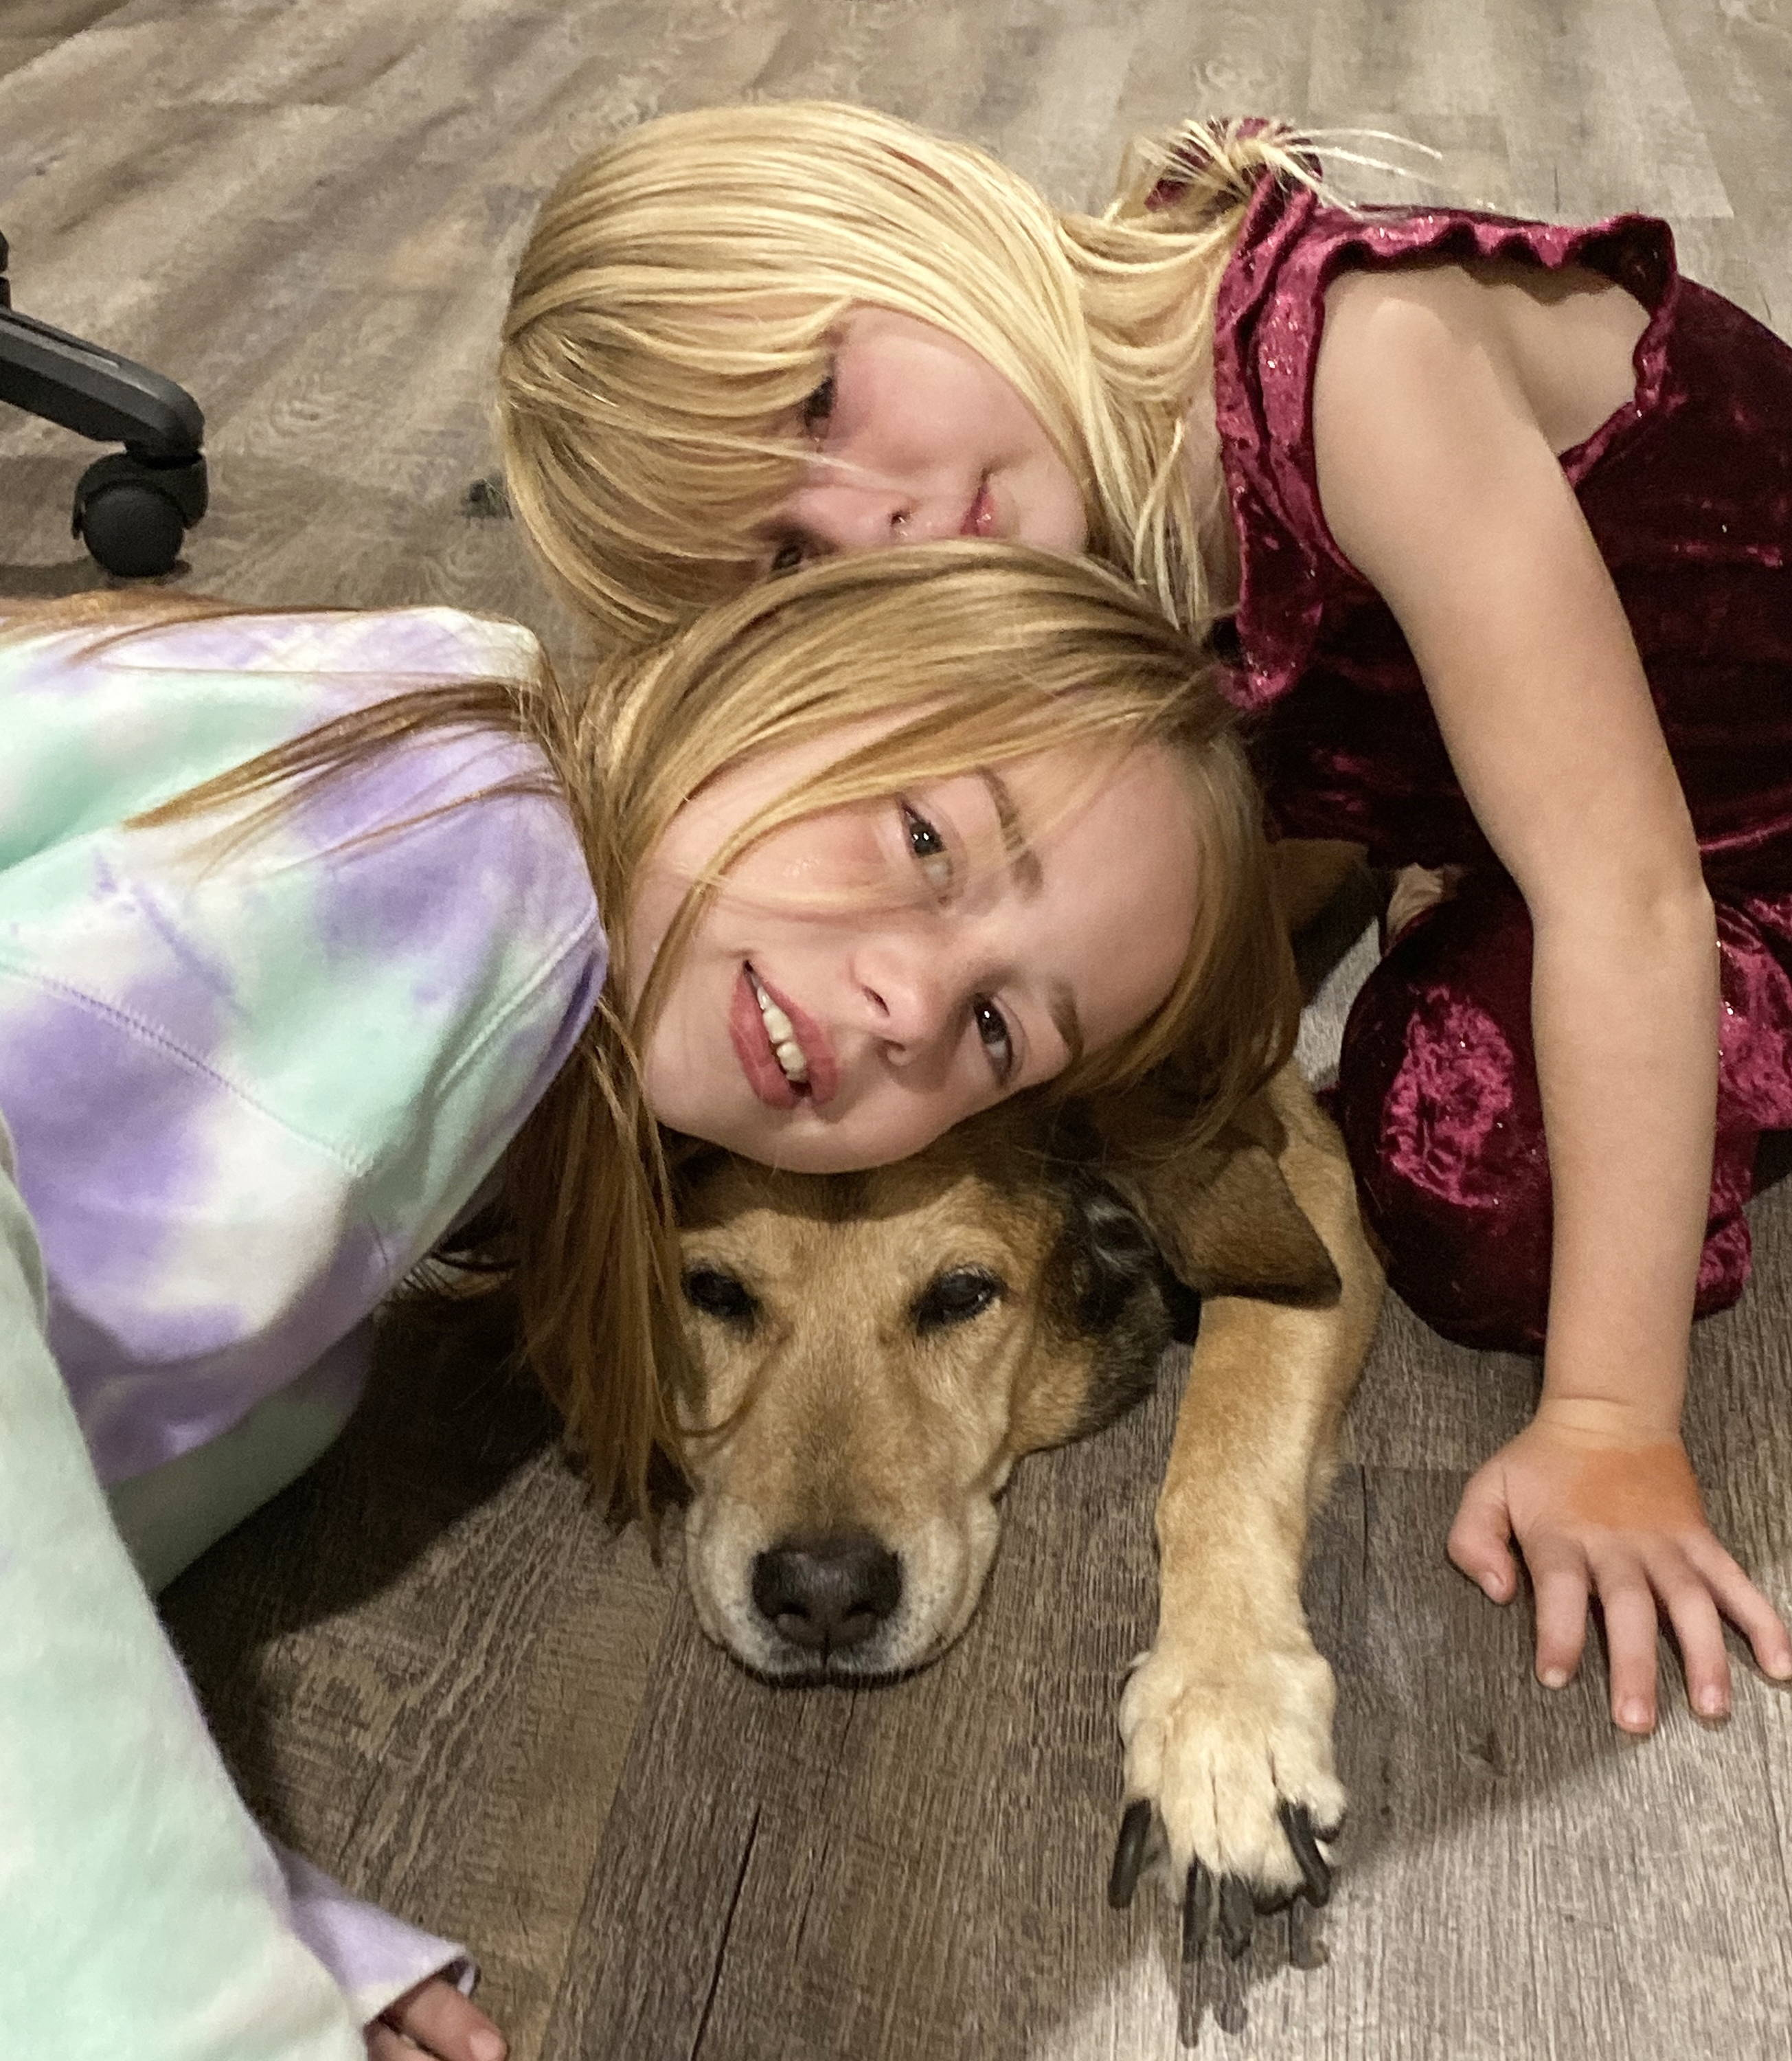 Young girls saying goodbye to a dying family dog.